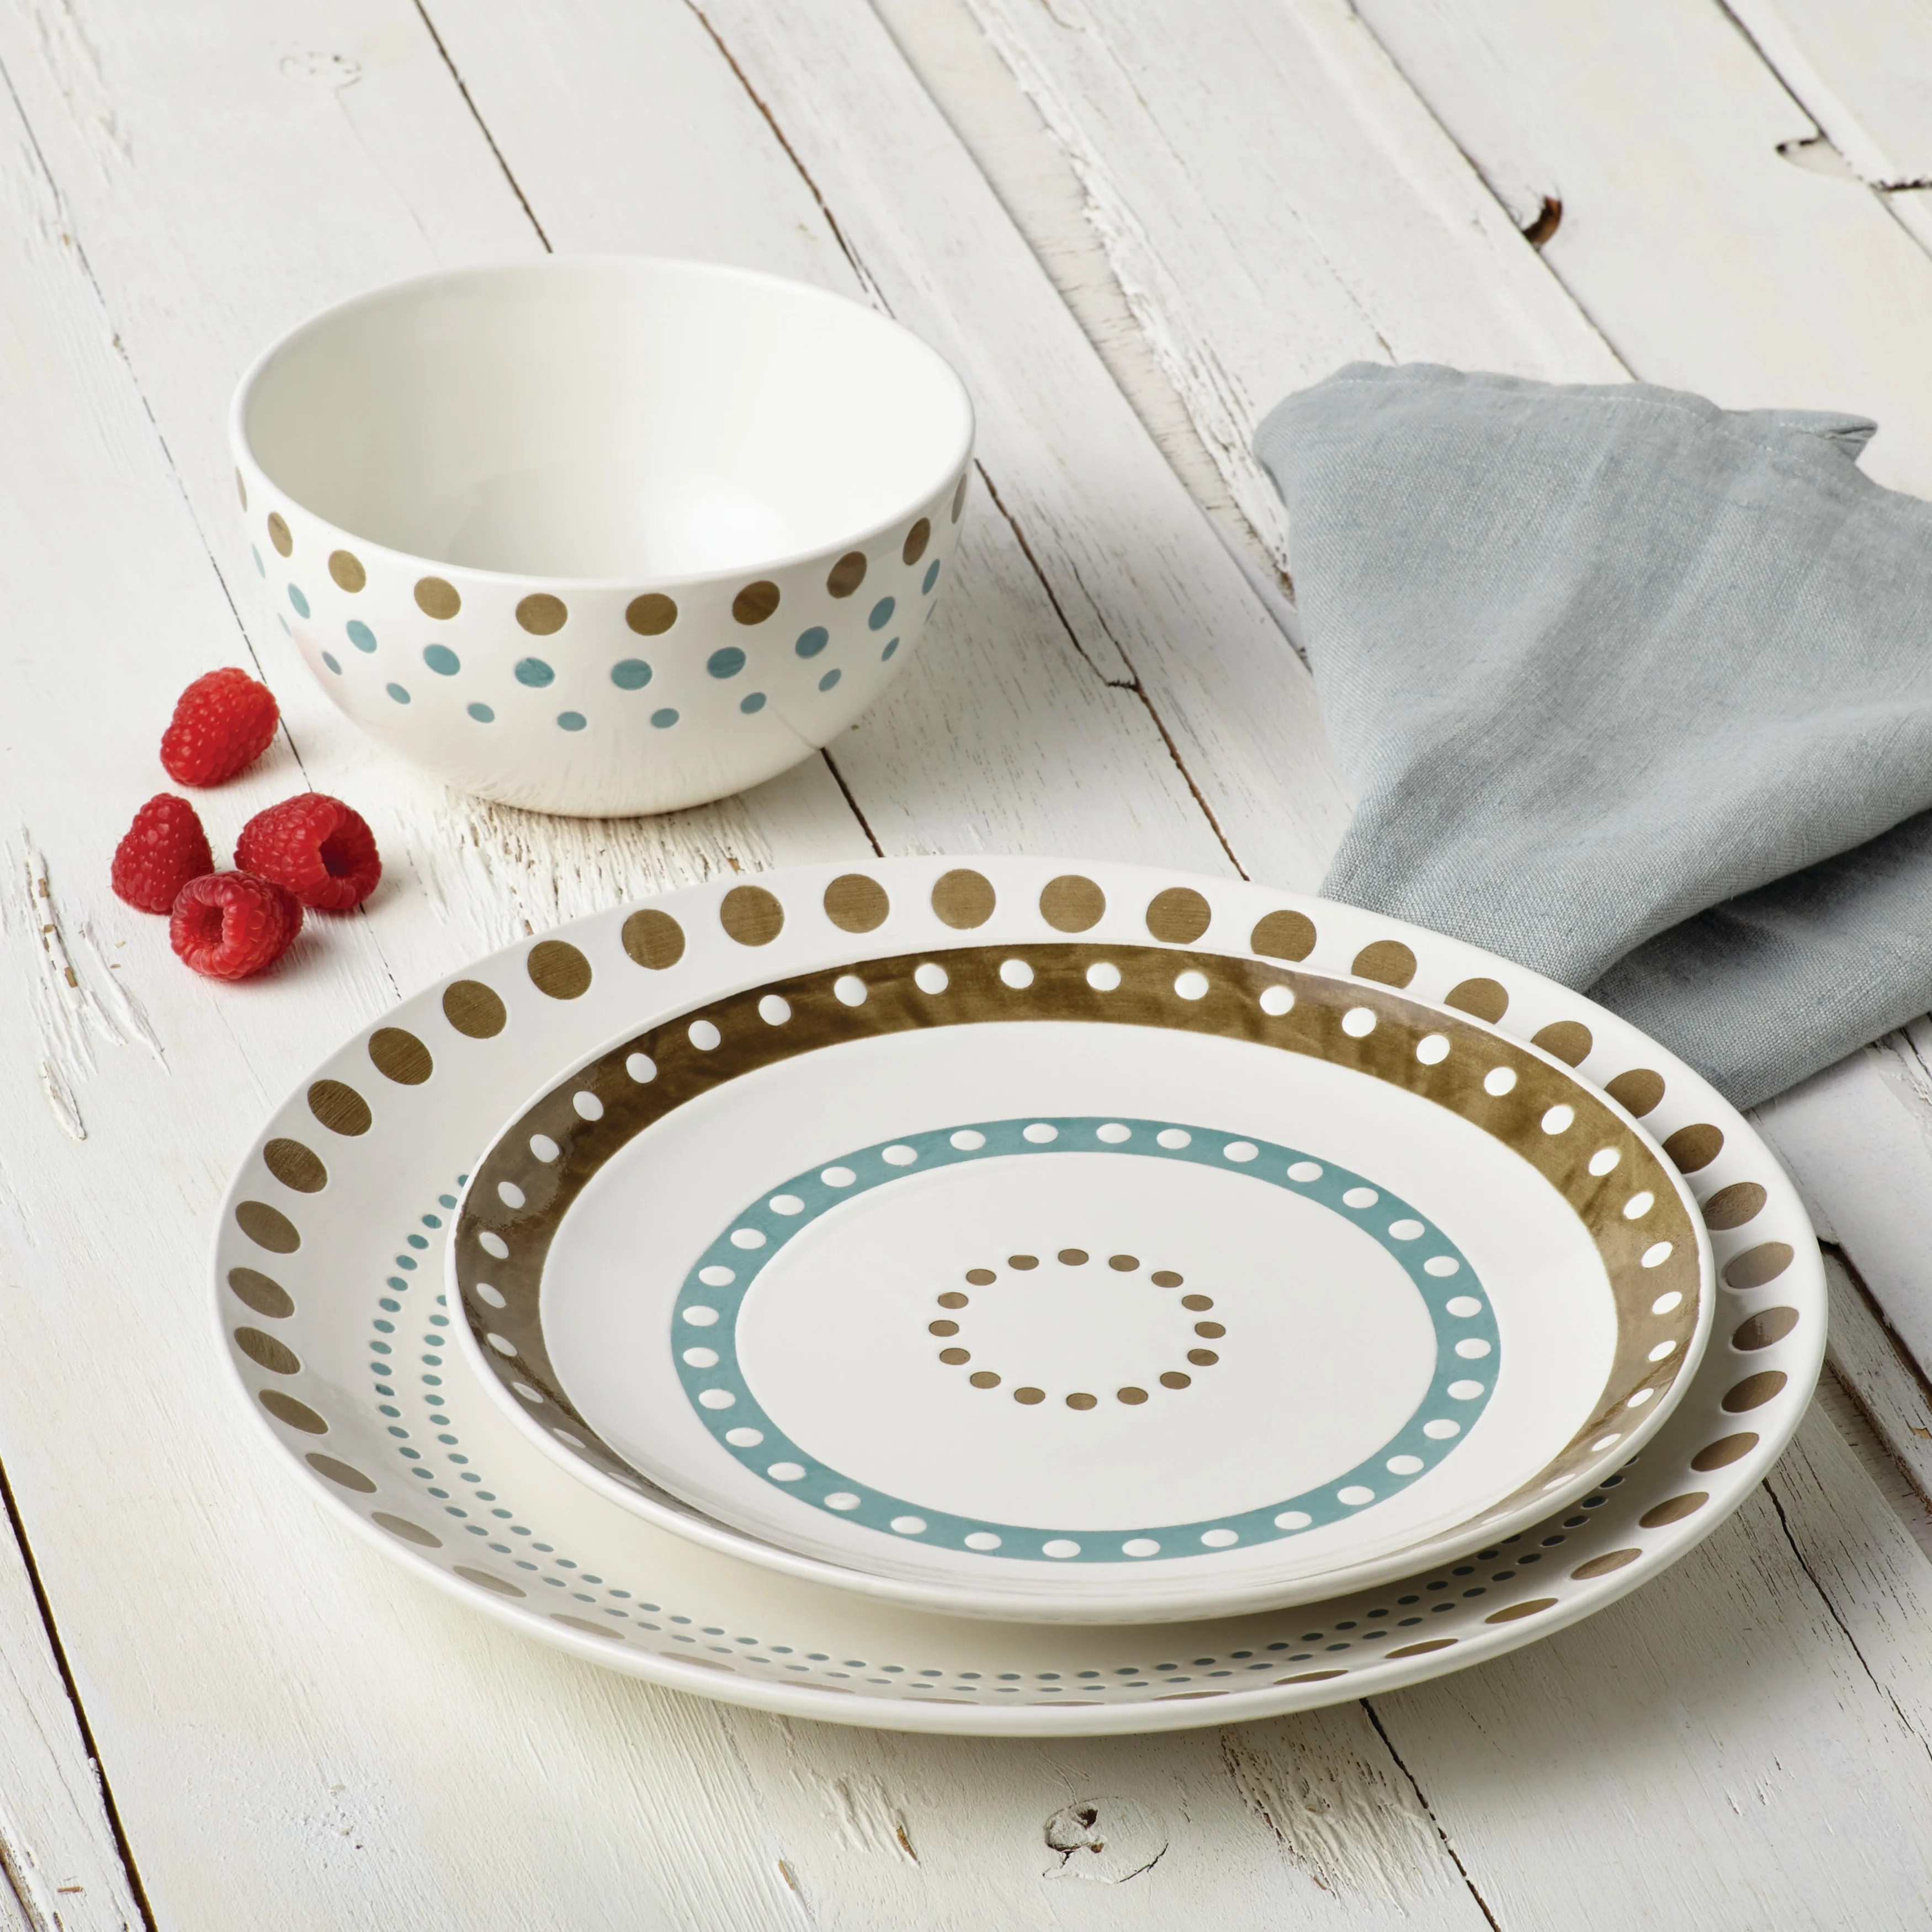 Set Da Cucina Exclusive Rachael Ray Cucina Circles And Dots Dinnerware 5 1 2 Inch Stoneware Cereal Bowl Agave Blue And Mushroom Brown